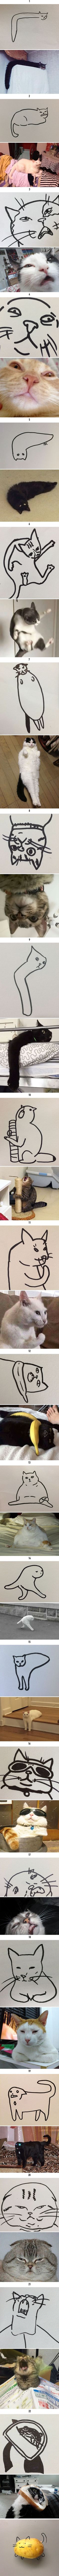 When People Say You Can't Draw But Your Drawings Are Incredibly Realistic . Browse new photos about When People Say You Can't Draw But Your Drawings Are Incredibly Realistic . Most Awesome Funny Photos Everyday! Because it's fun! Cute Funny Animals, Funny Animal Pictures, Funny Cute, Cute Cats, Hilarious, Funny Pics, Crazy Cat Lady, Crazy Cats, Image Hilarante